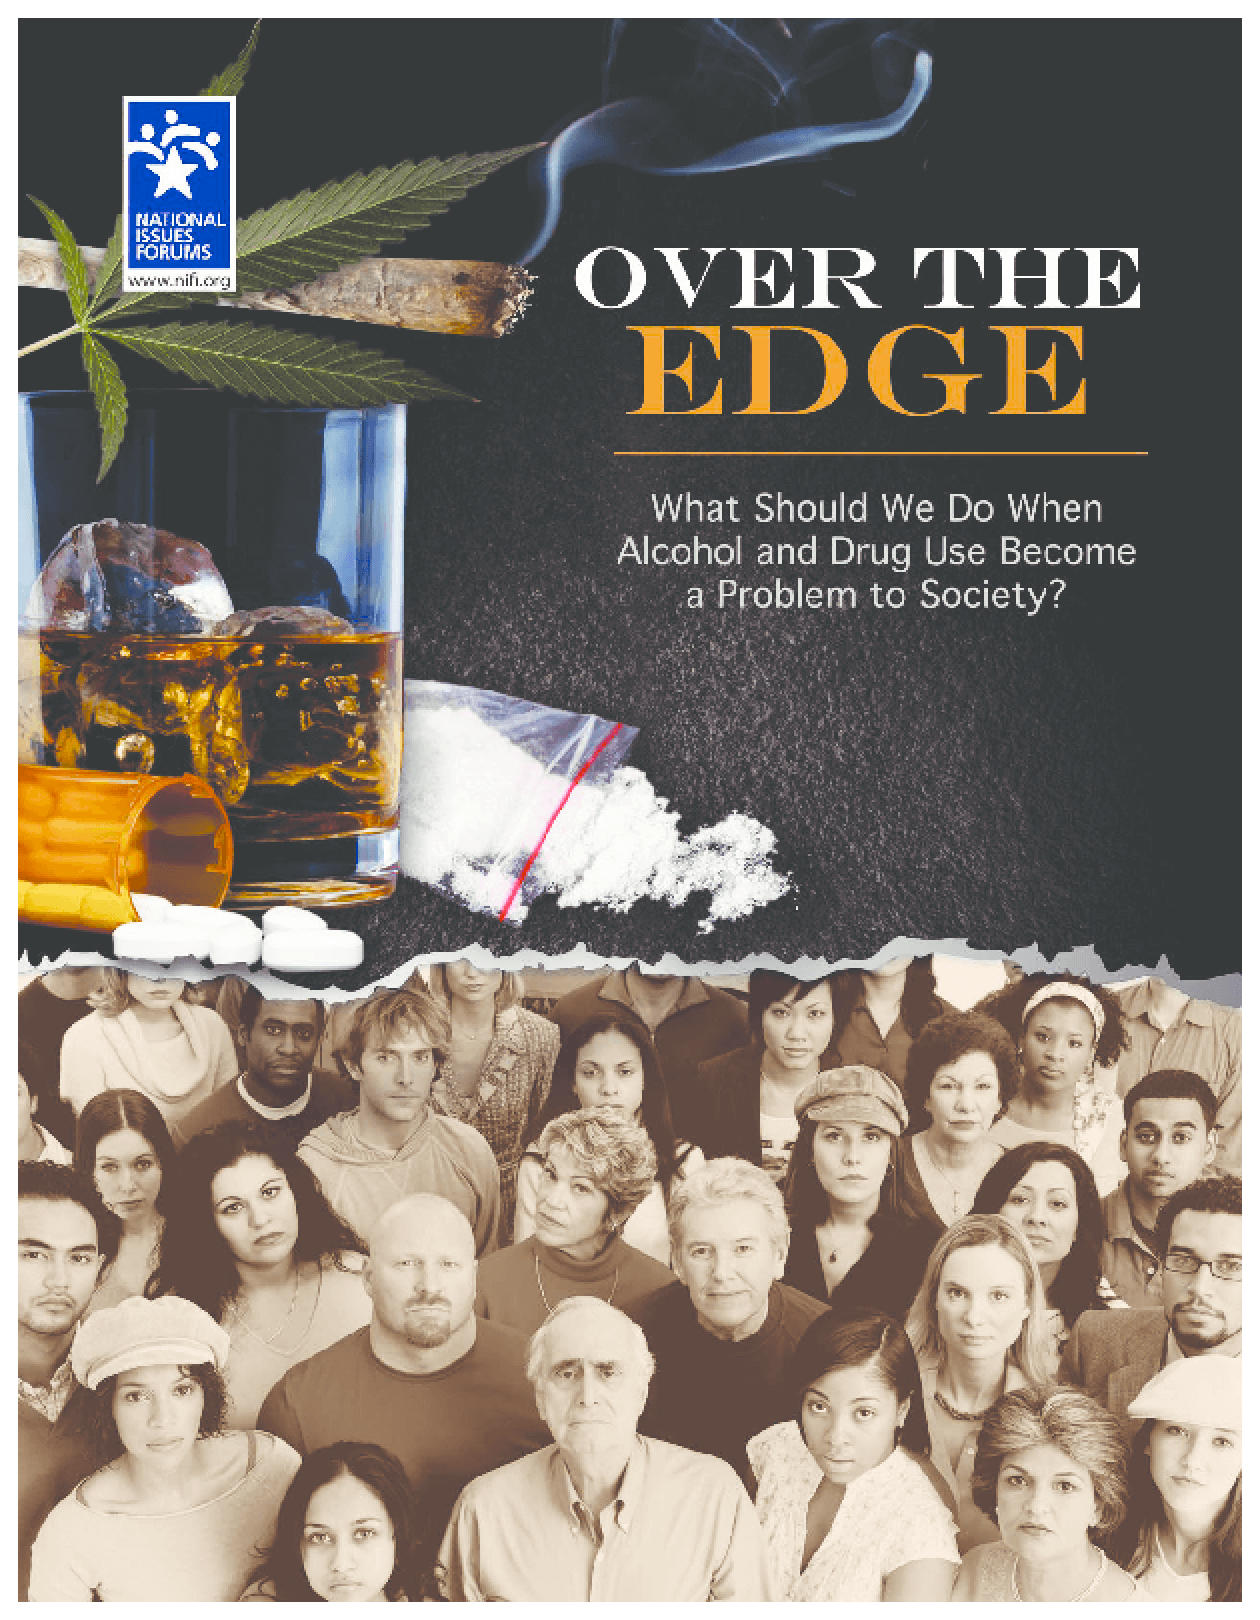 Over The Edge: What Should We Do When Alcohol and Drug Use Become a Problem to Society?